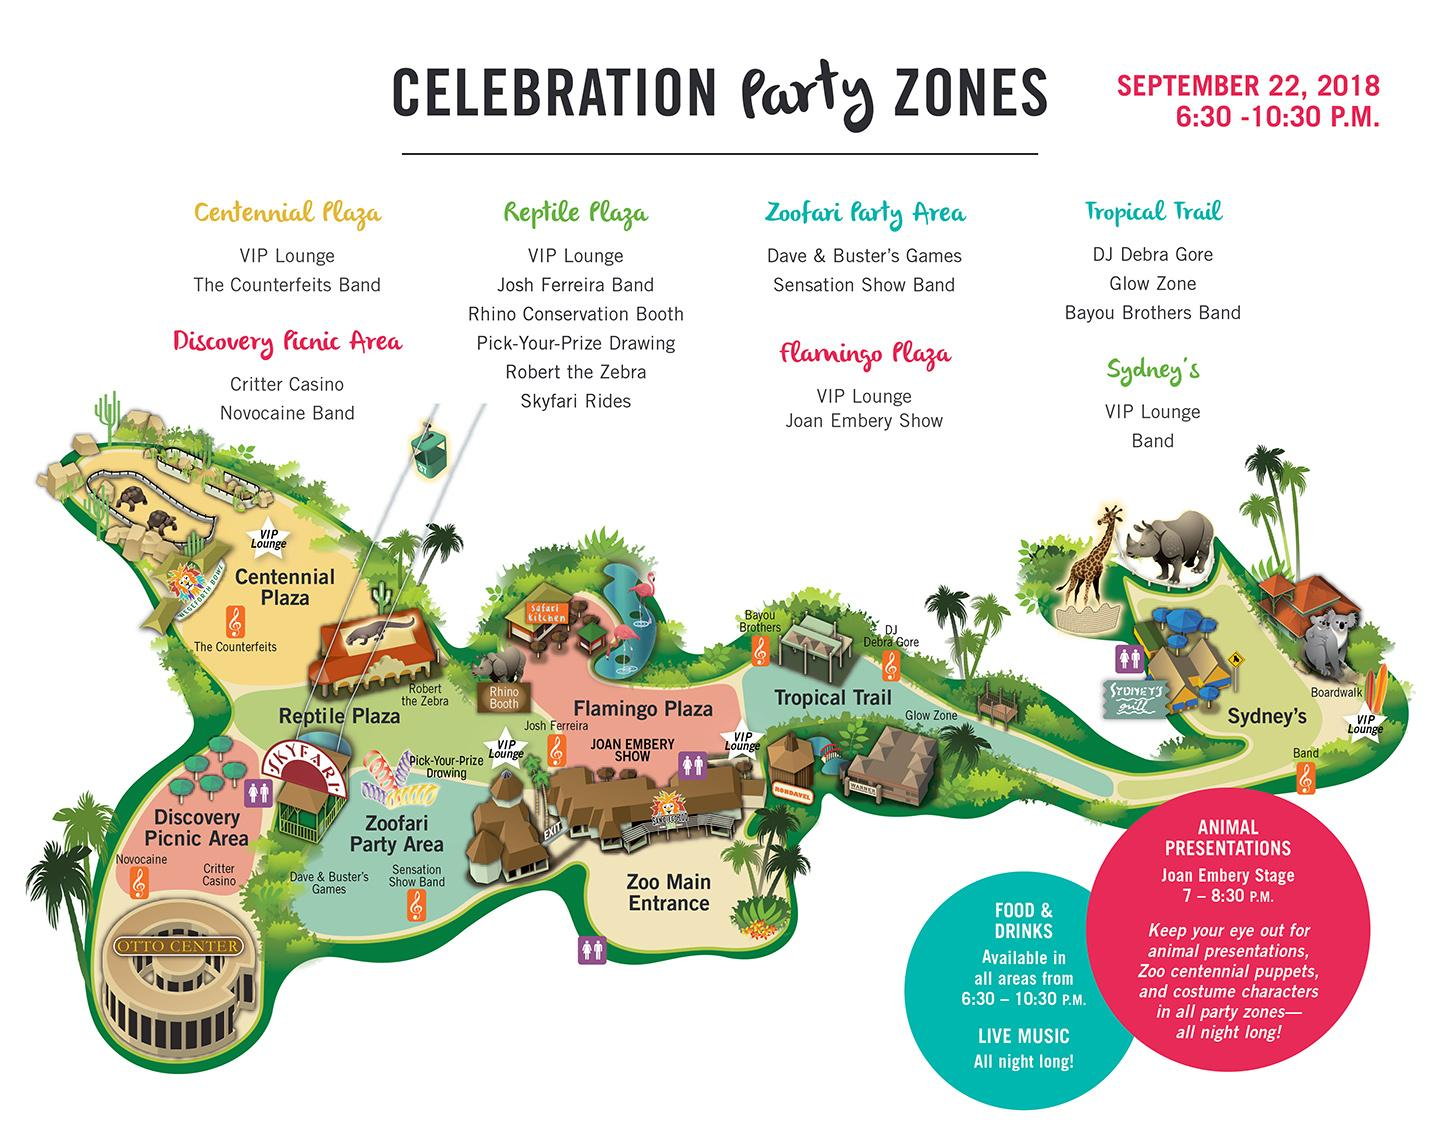 Celebration Party Zones map